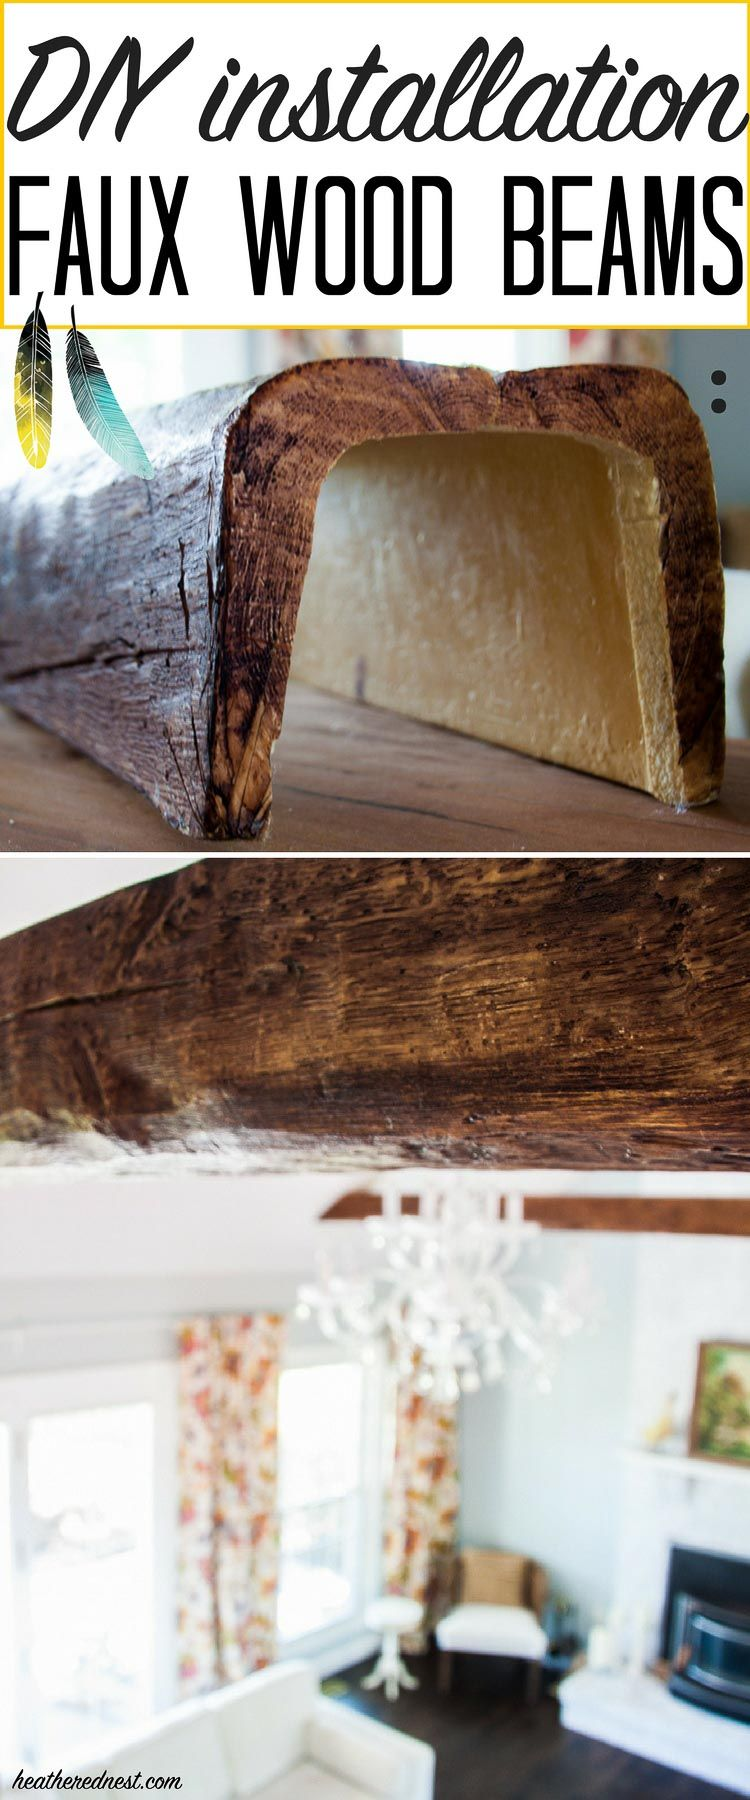 Ideas : WOW! They look just like real WOOD BEAMS! Faux beams are super affordable! Learn how to install faux beams with this popular DIY tutorial from heatherednest.com